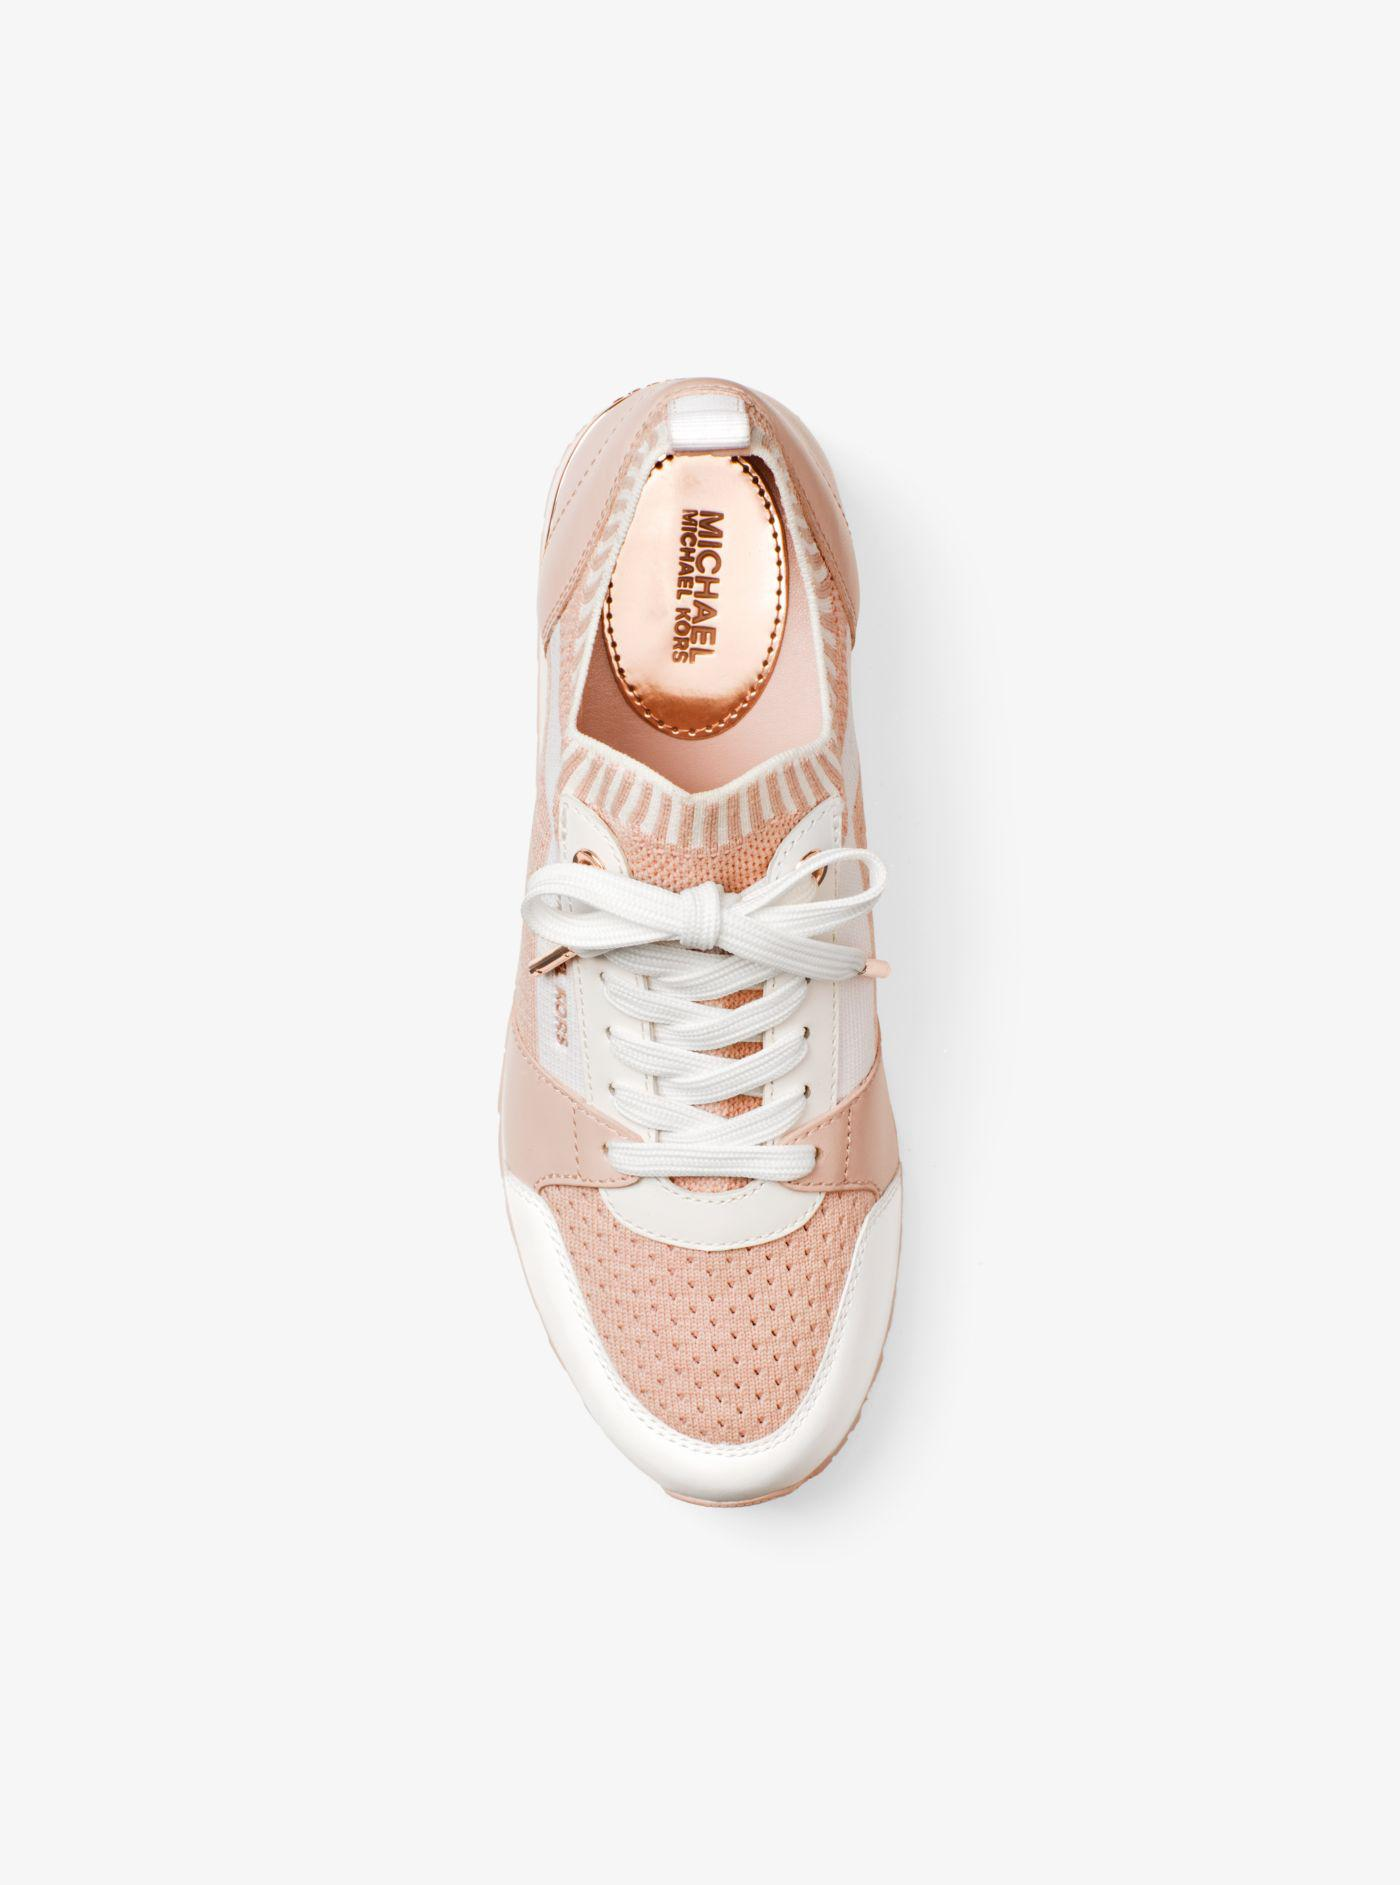 739f61afb0a0 Lyst - Michael Kors Billie Knit Trainer in Pink